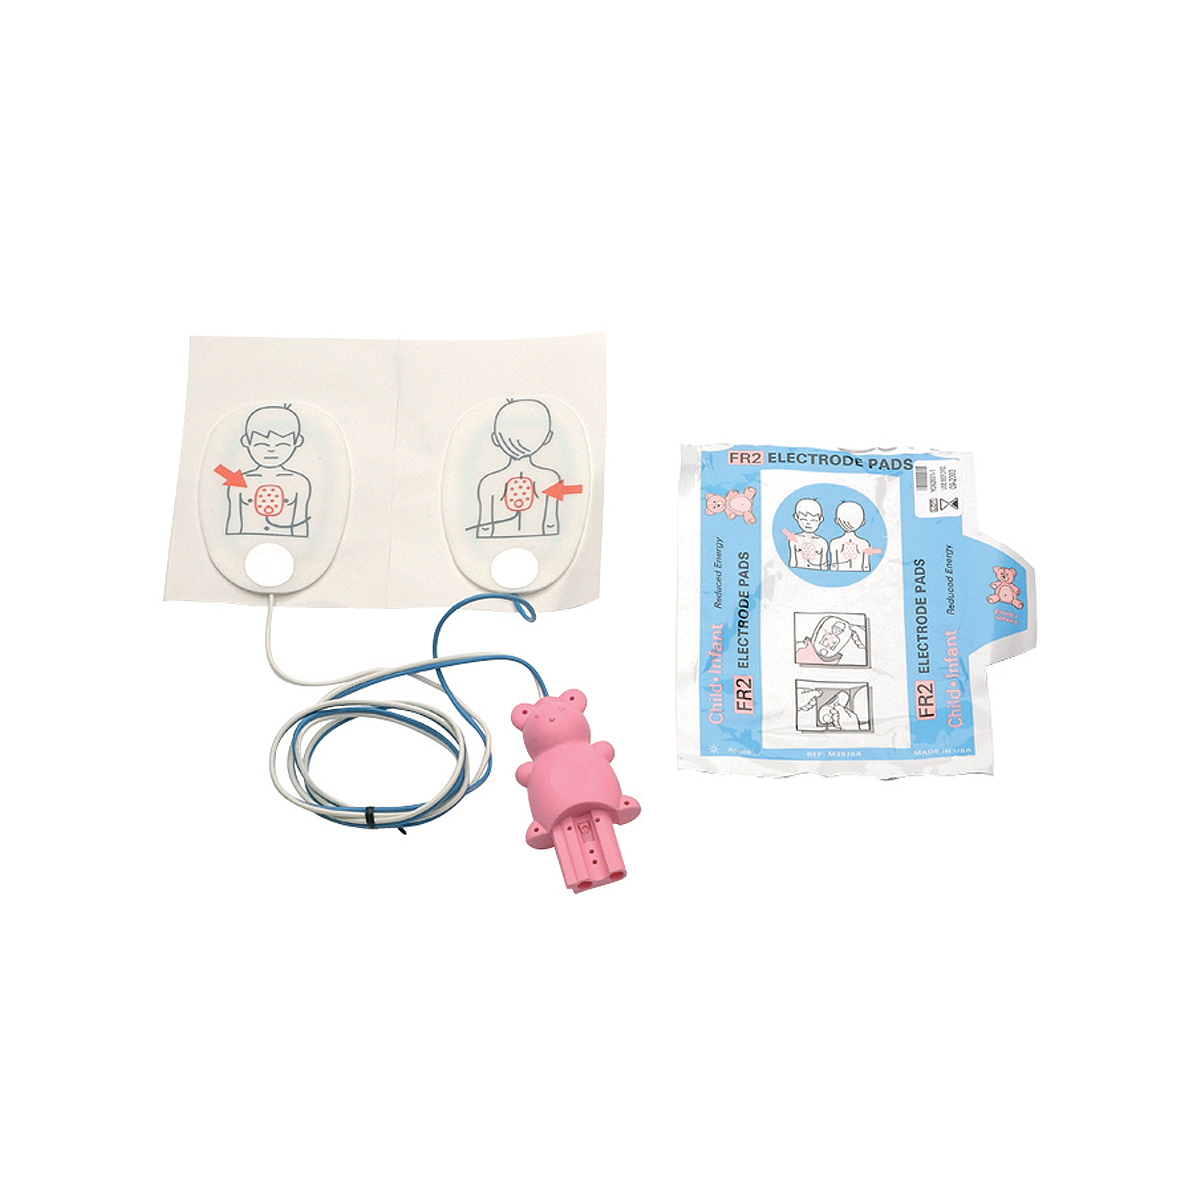 Pair of Philips Heartstart® FR2 Infant/ Child Reduced Energy Defibrillator Pads